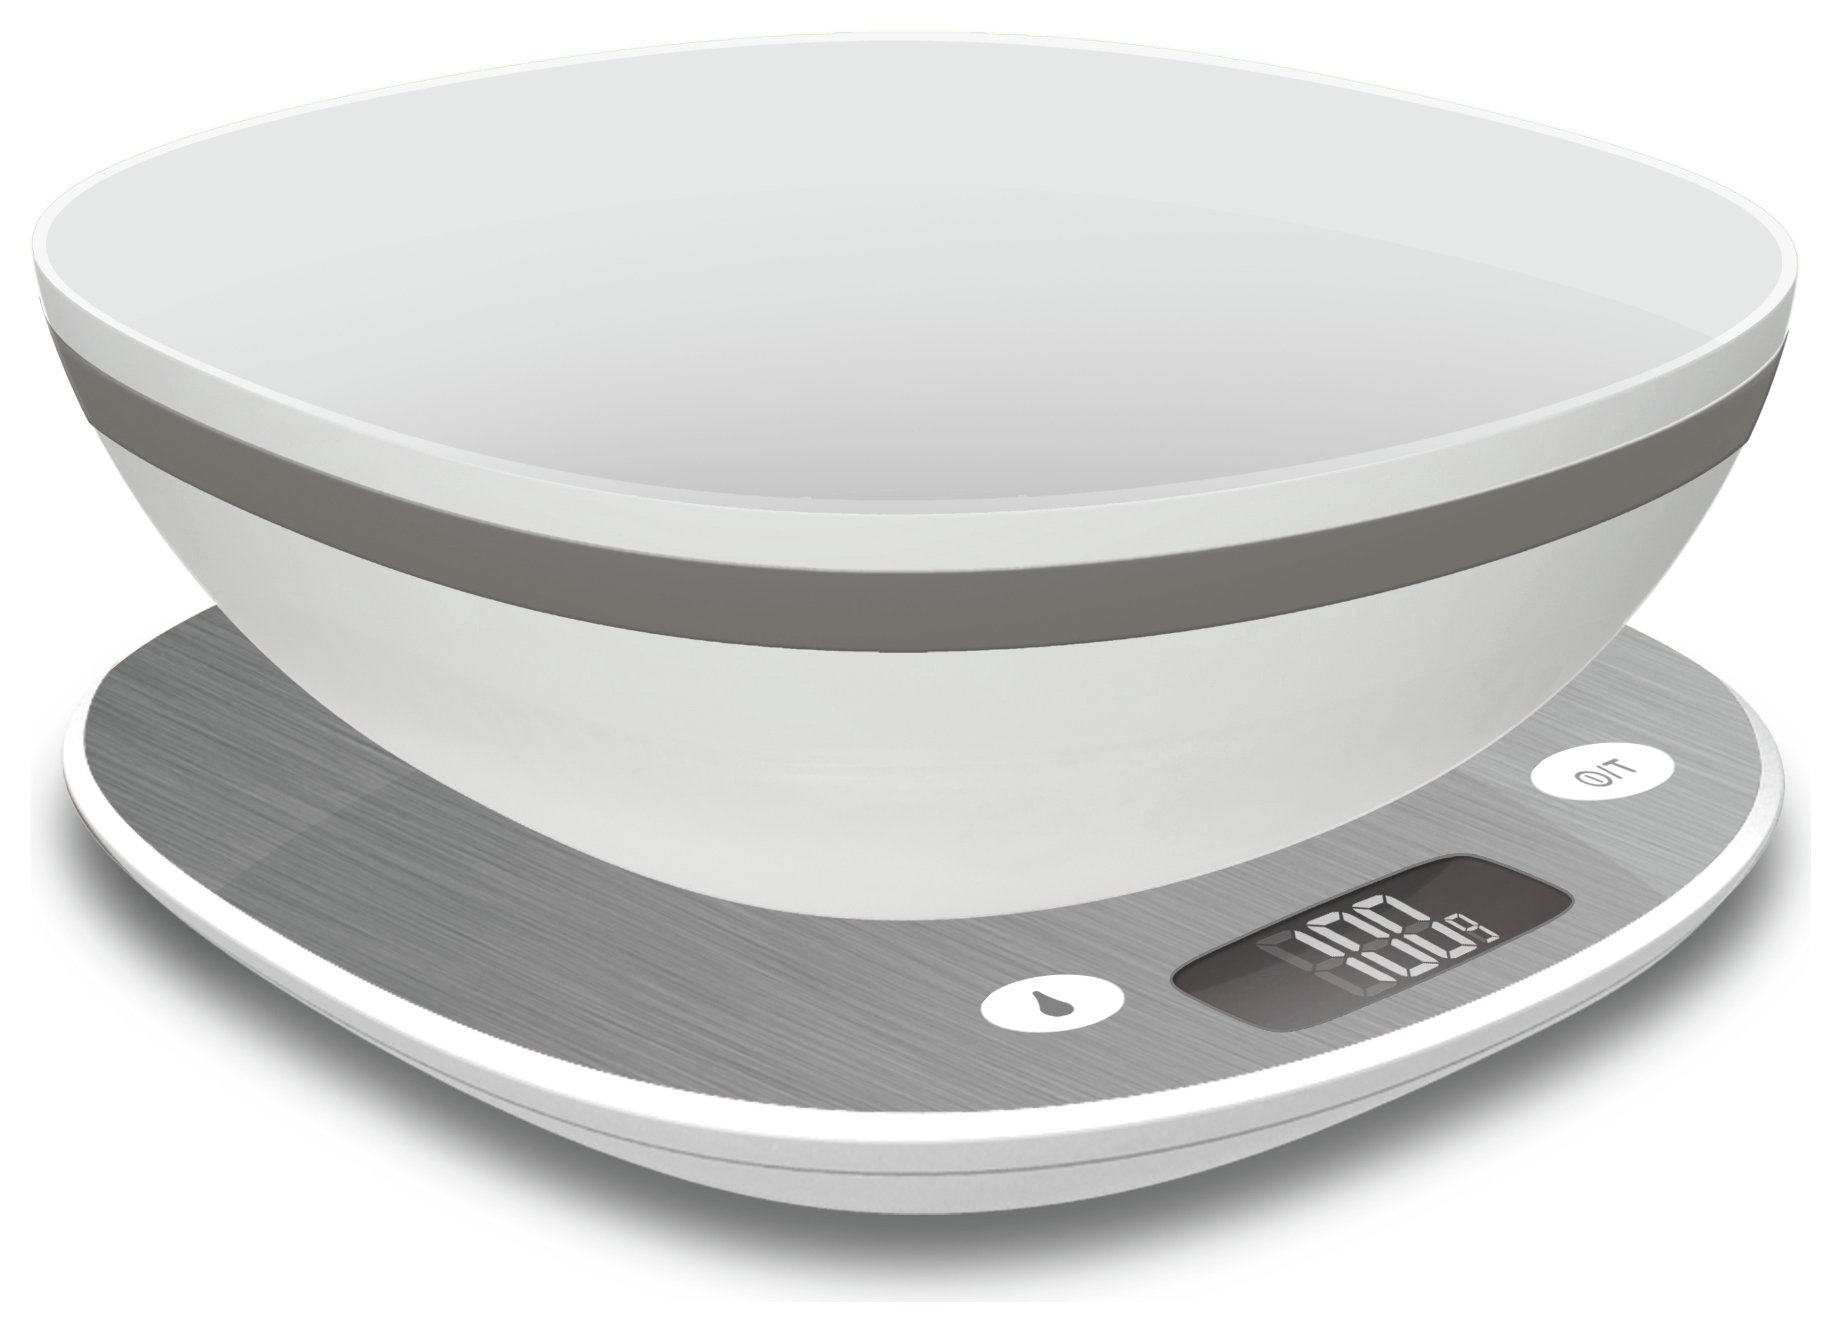 Terraillon Macaron 5Kg Scale with Bowl - Stainless Steel